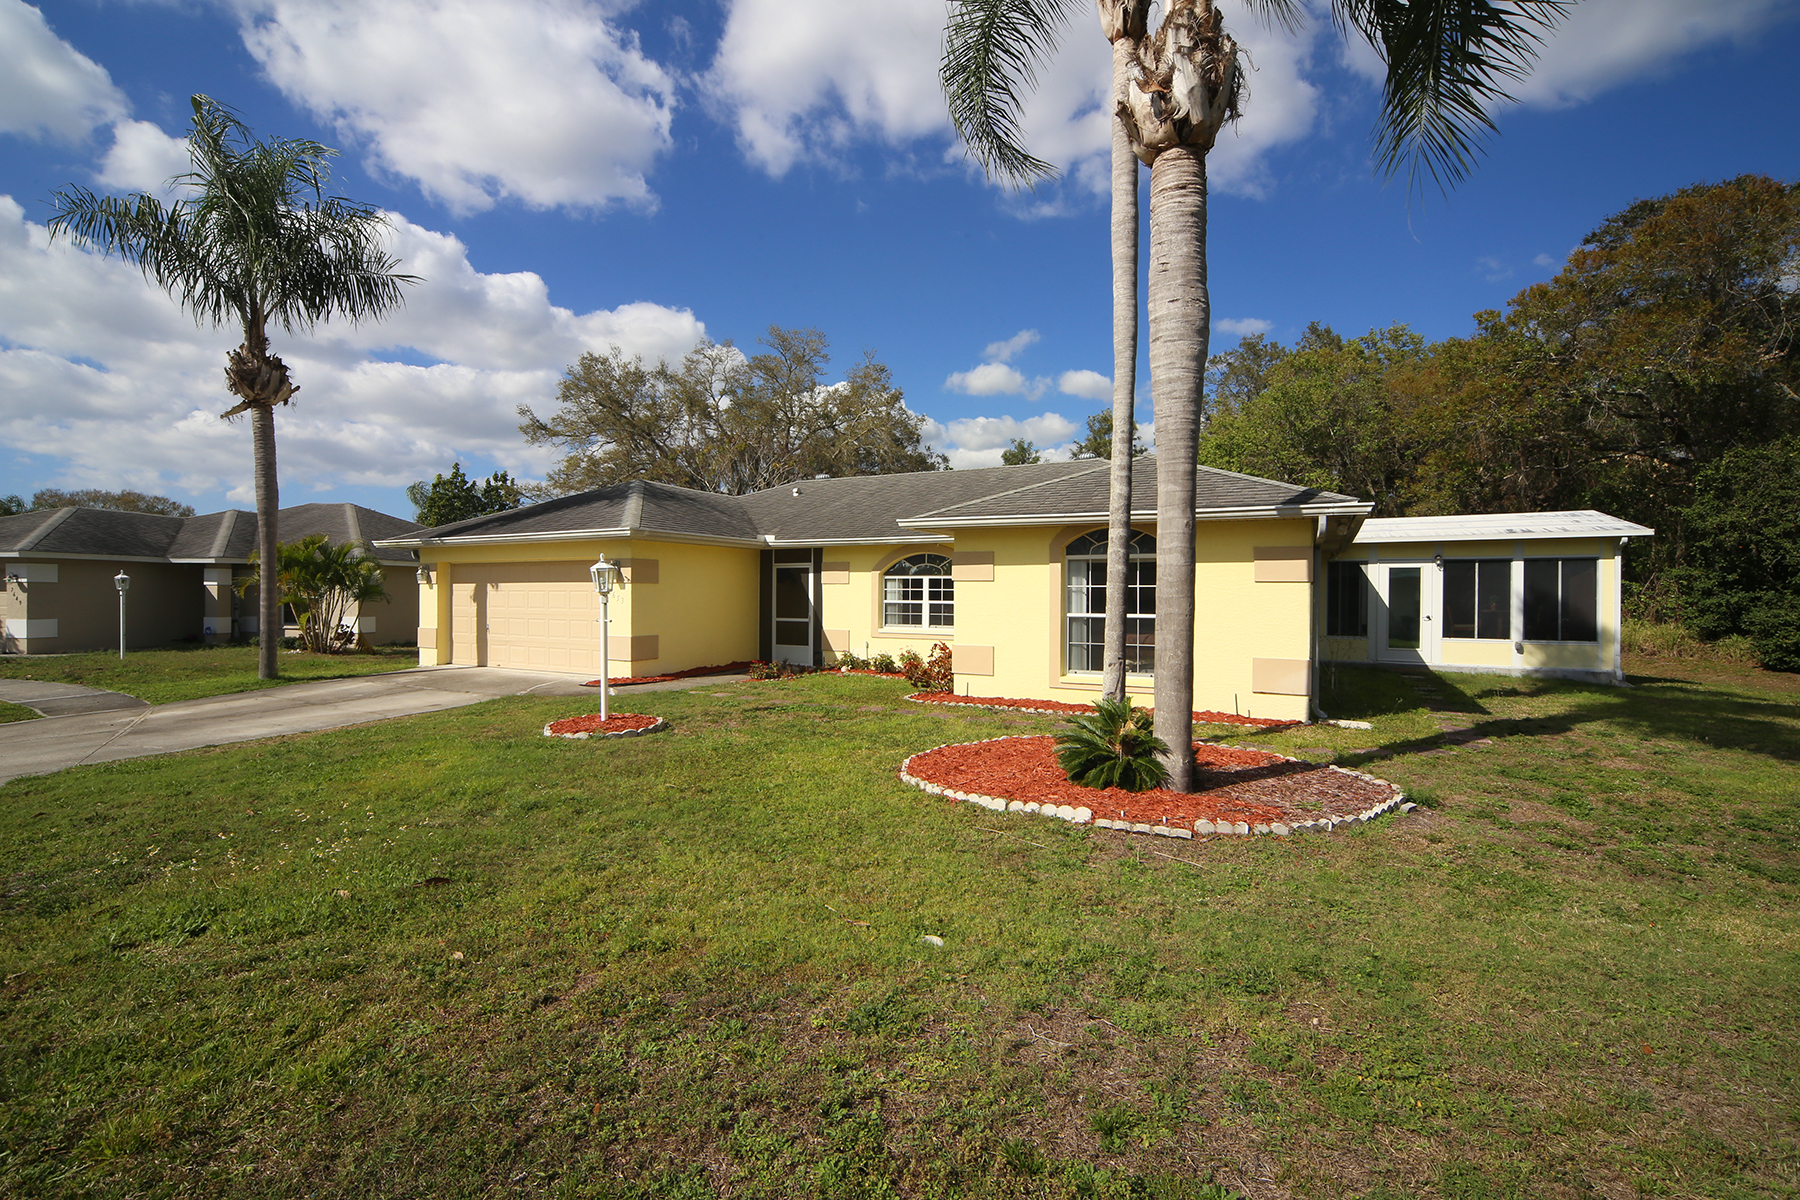 Single Family Home for Sale at COURT OF PALMS 7653 39th Street Cir E Sarasota, Florida, 34243 United States